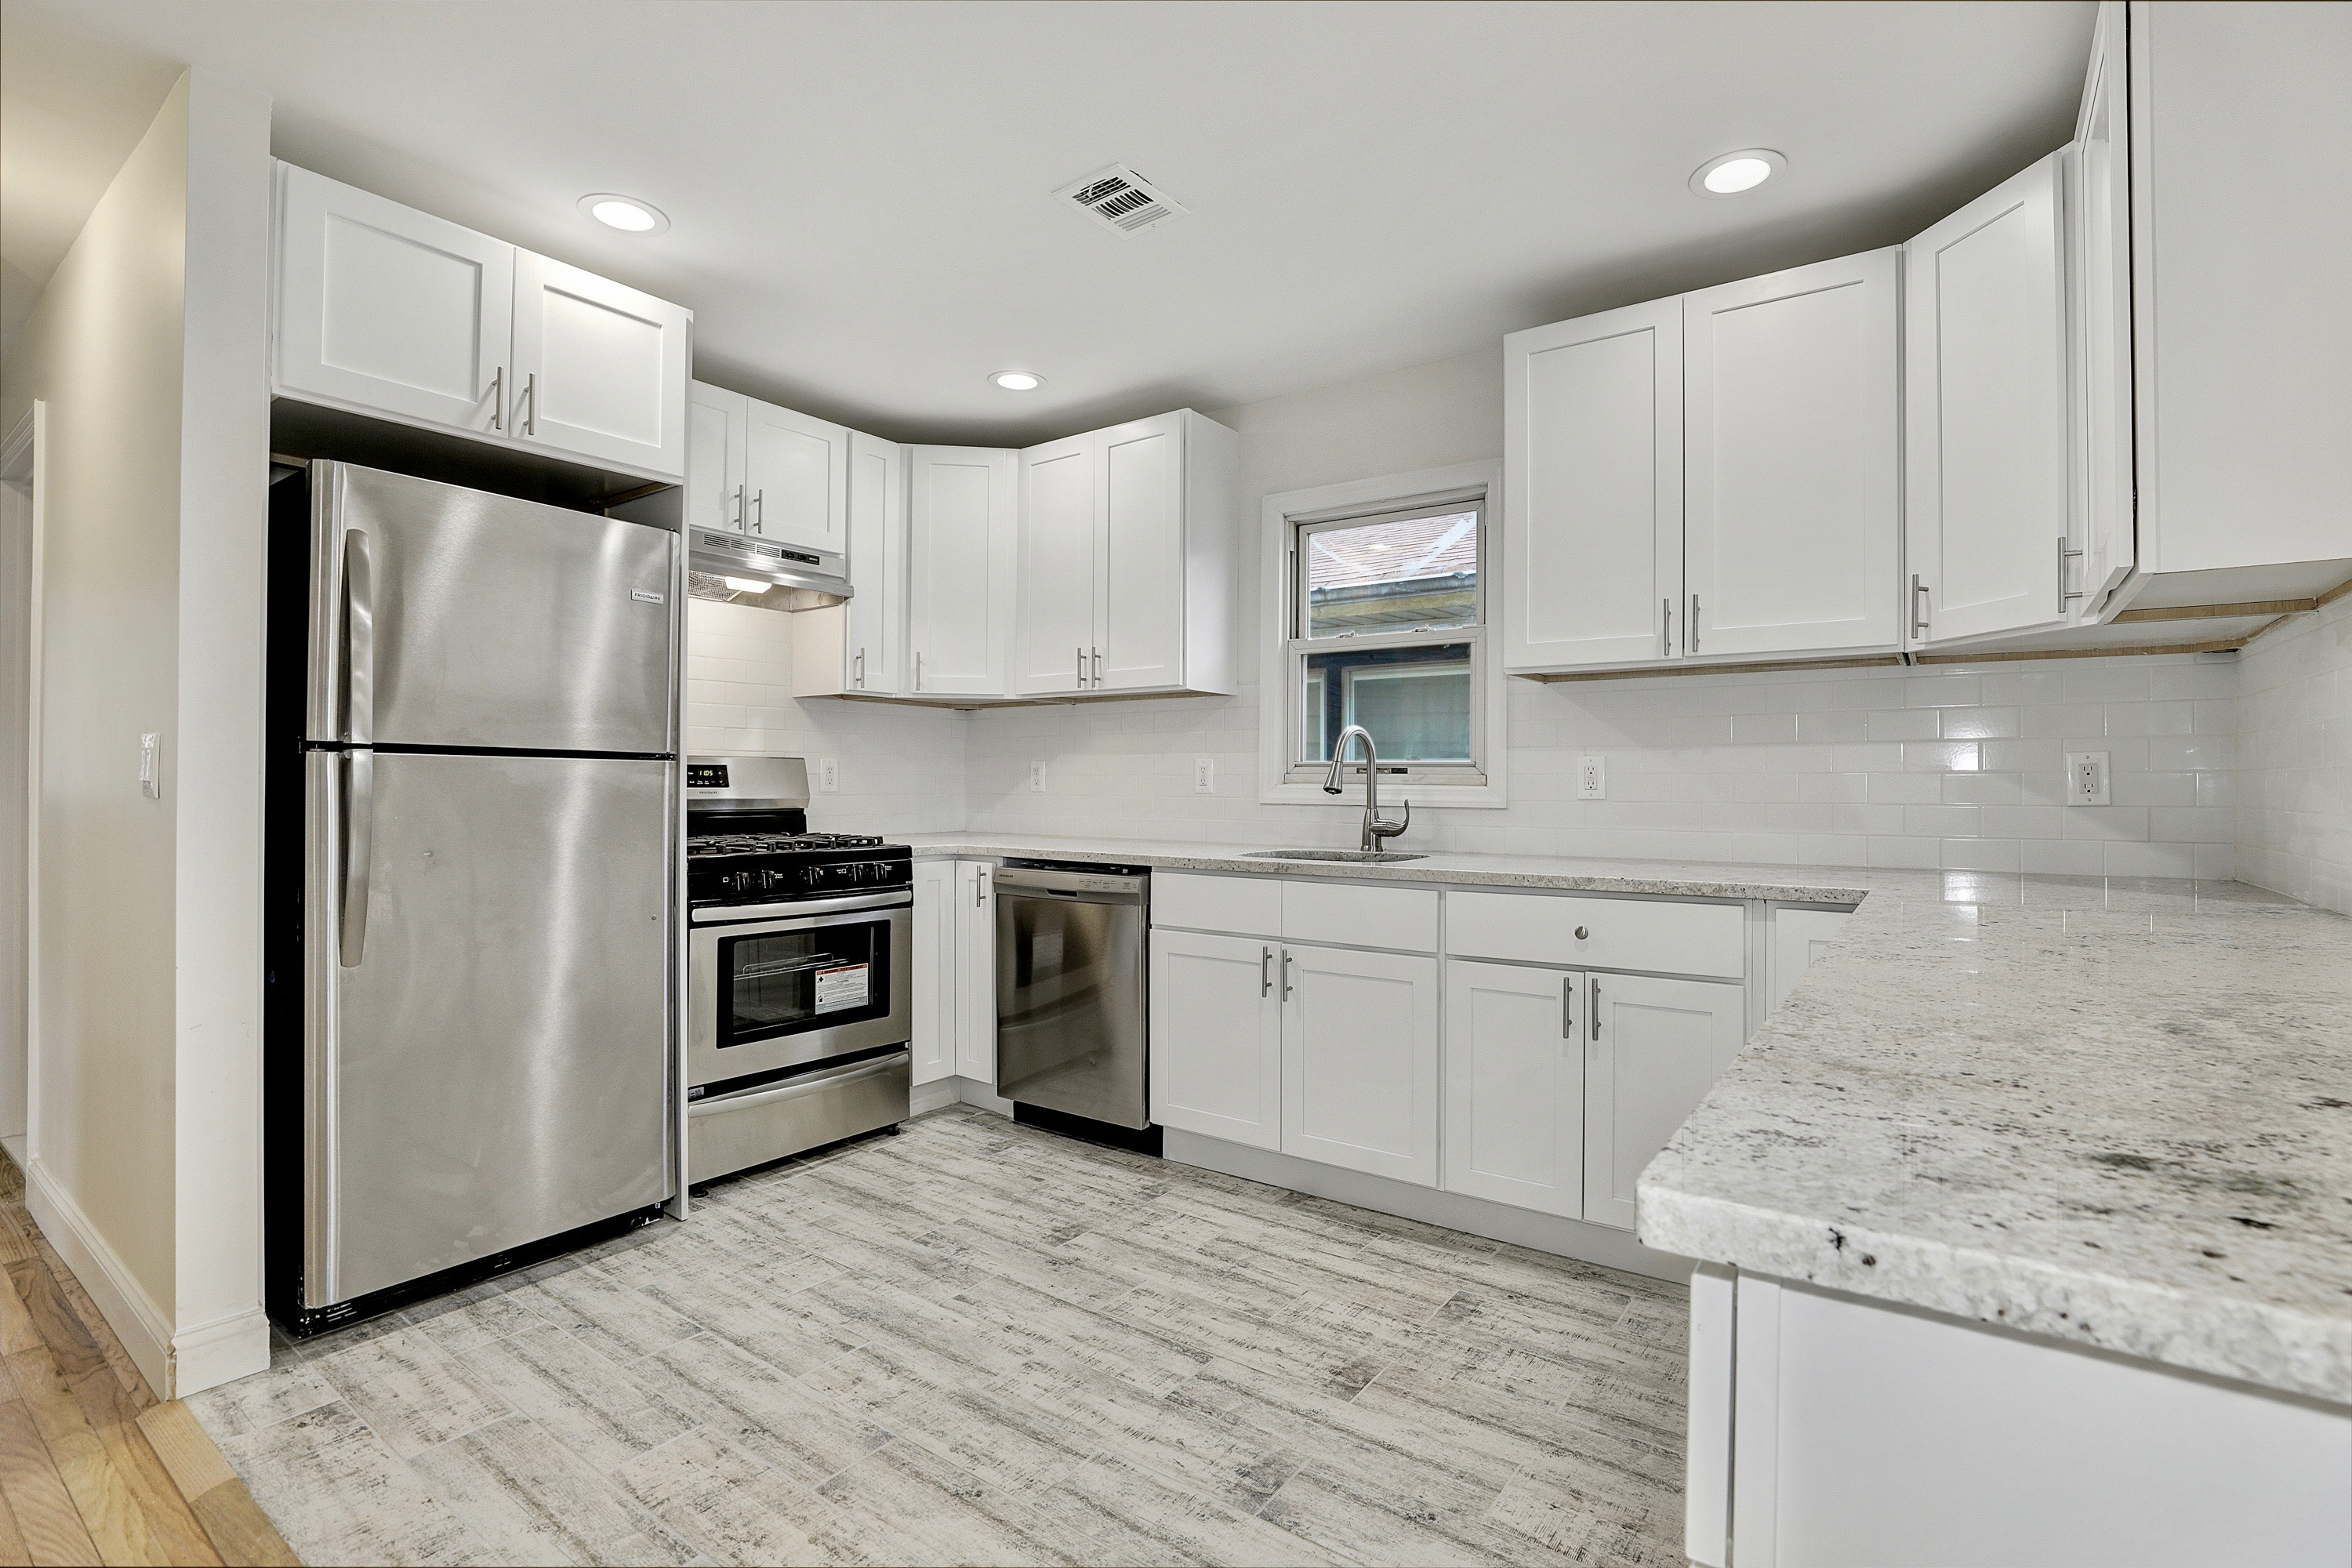 kitchen after hard money loan renovations